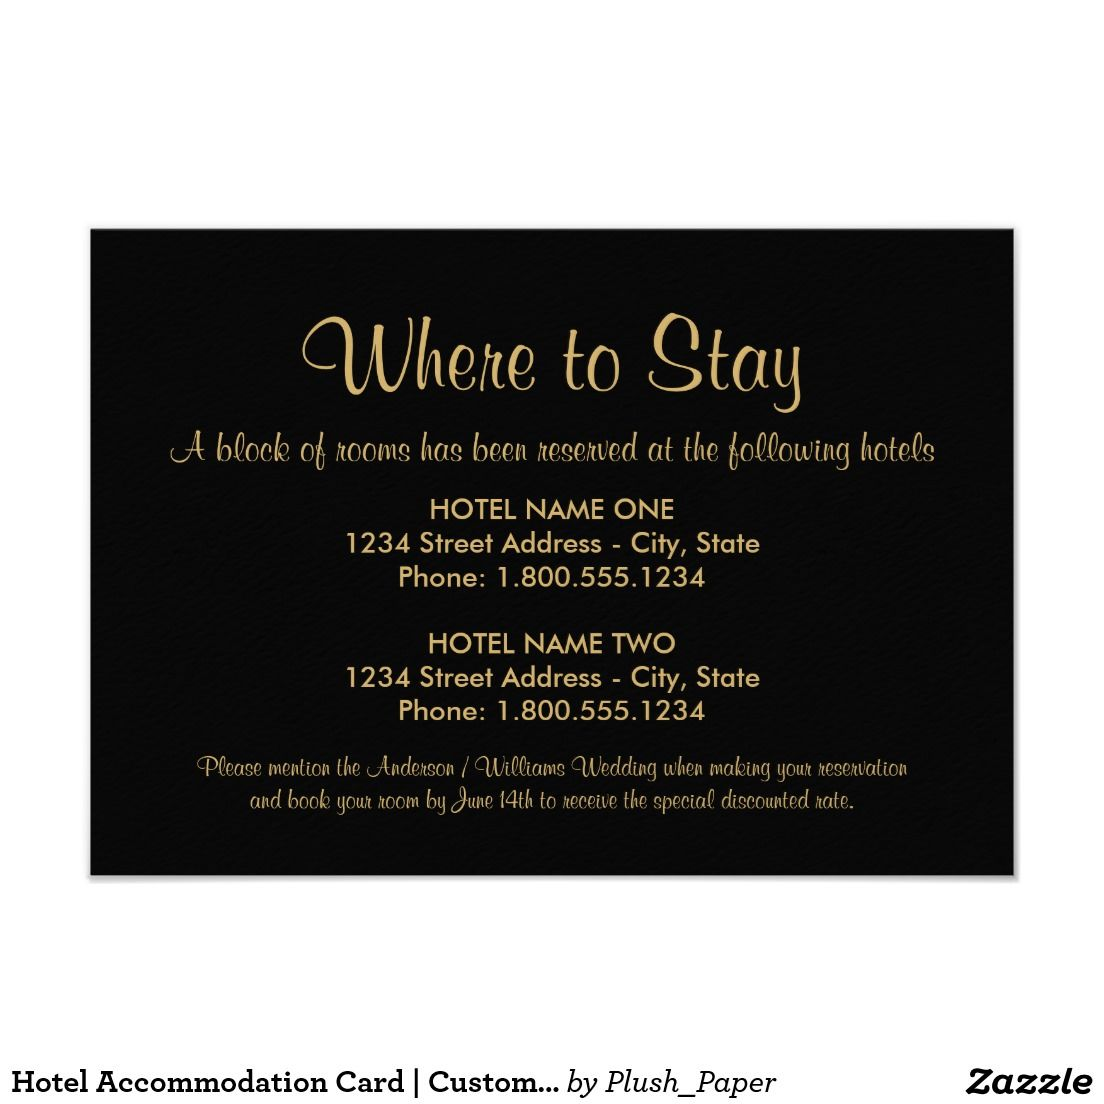 Hotel accommodation card custom colors accommodations card hotel accommodation card custom colors gold wedding invitationszazzle filmwisefo Choice Image